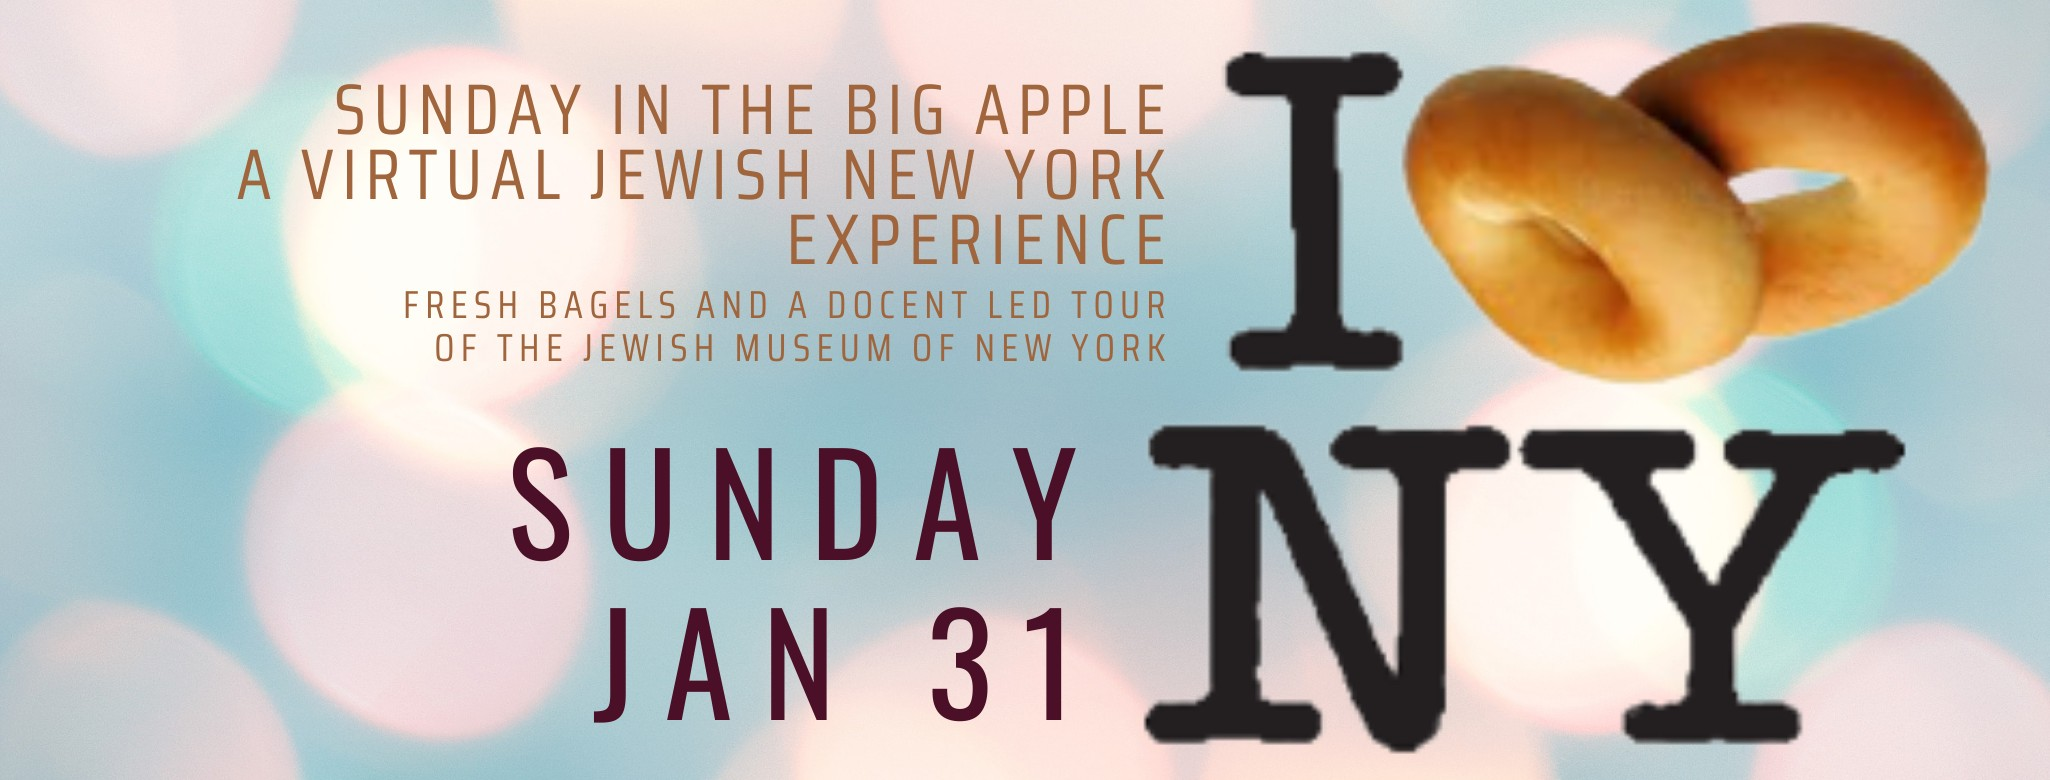 """<a href=""""https://www.templebethel.com/event/jewish-museum-nyc-zoom-tour-.html""""                                     target=""""_blank"""">                                                                 <span class=""""slider_title"""">                                     Special Event                                </span>                                                                 </a>                                                                                                                                                                                      <a href=""""https://www.templebethel.com/event/jewish-museum-nyc-zoom-tour-.html"""" class=""""slider_link""""                             target=""""_blank"""">                             More information                            </a>"""